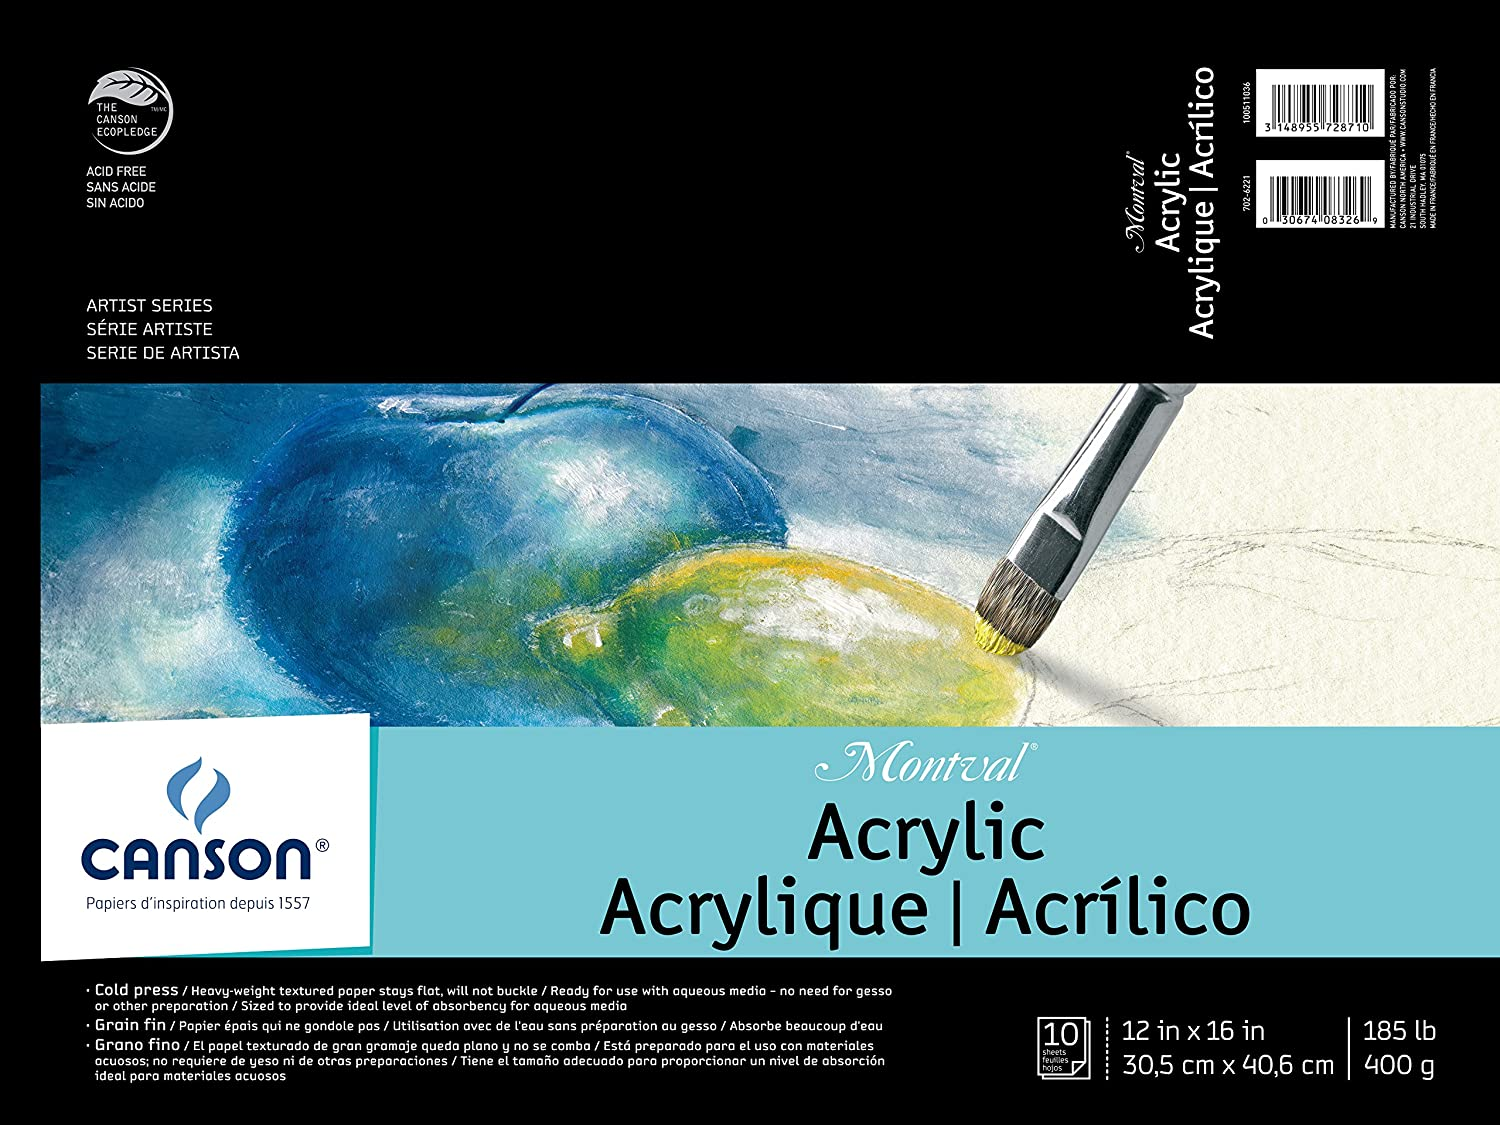 Fold Over Canson Artist Series Montval Acrylic Pad 16 x 20 Inch Sized Heavyweight No-Buckle Paper 185 Pound 10 Sheets